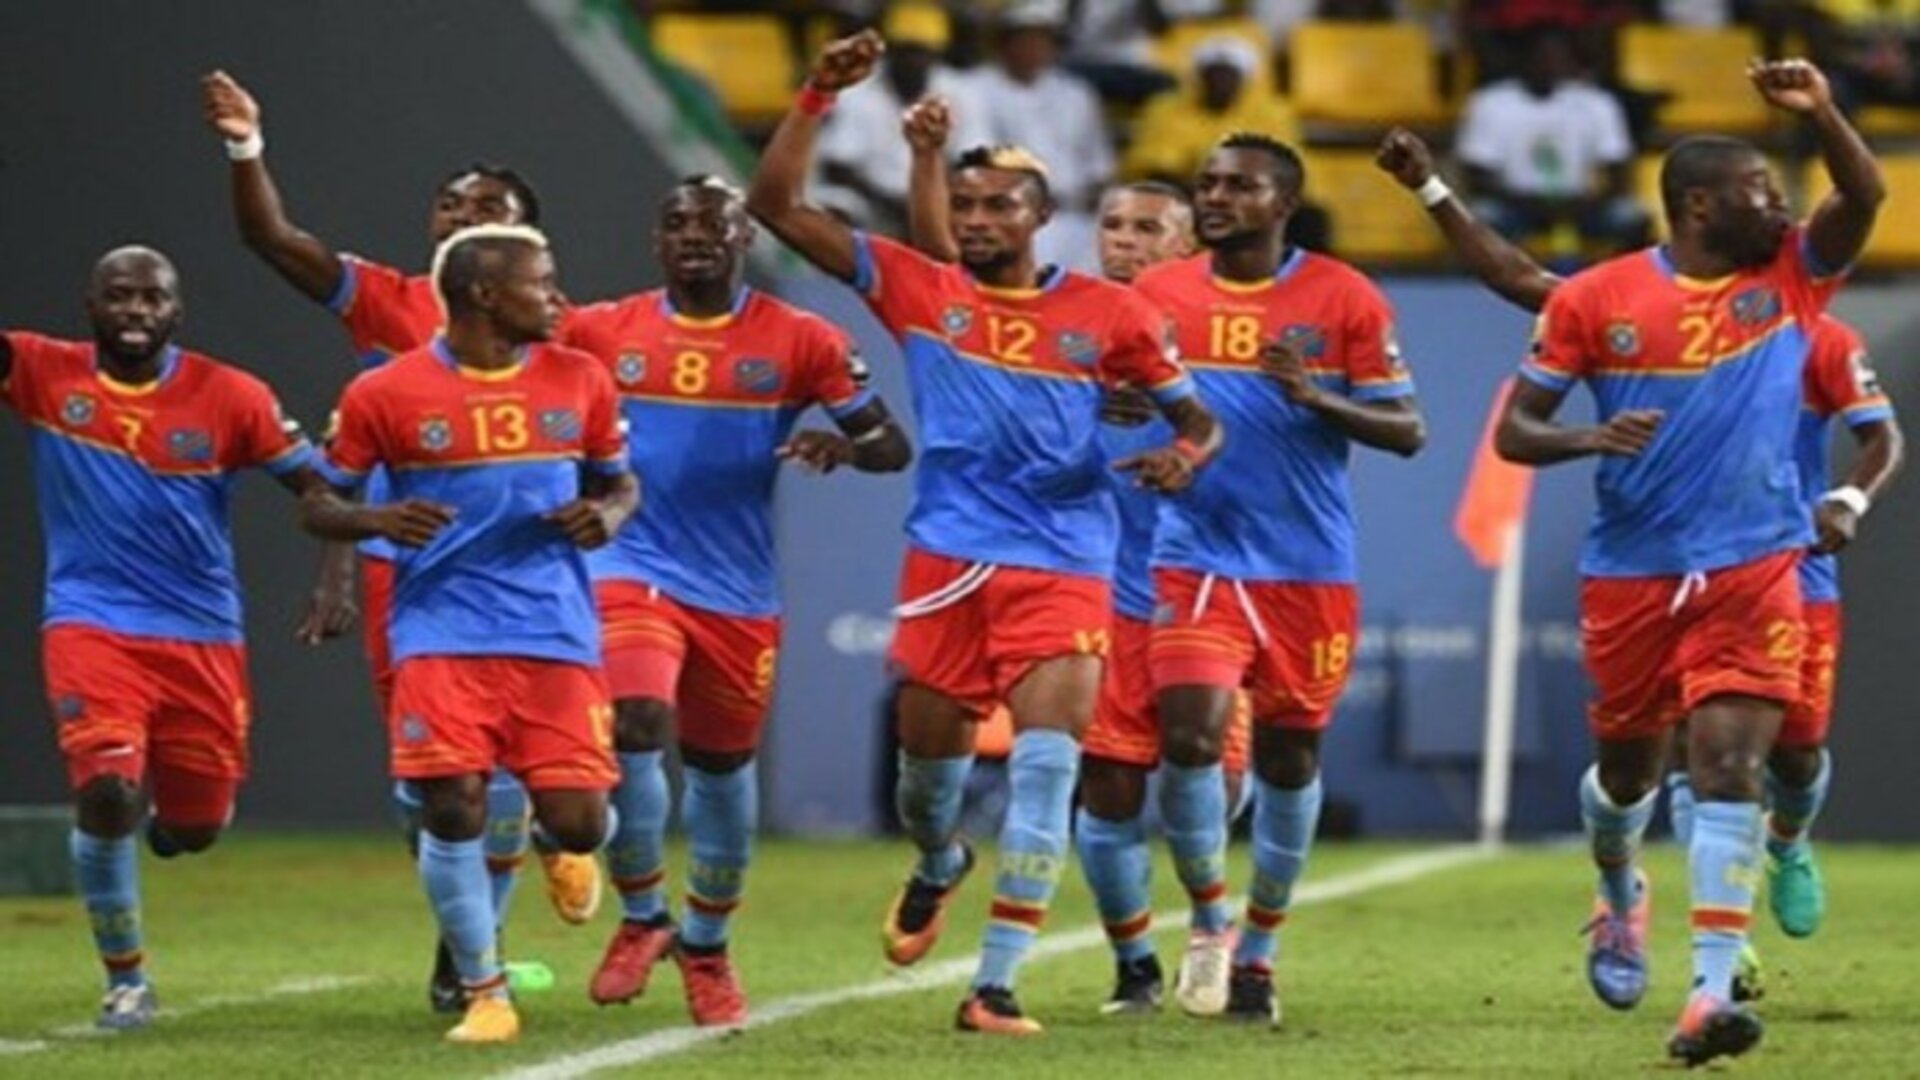 Nsengi-Biembe tells DR Congo they're the best after losing to Ivory Coast